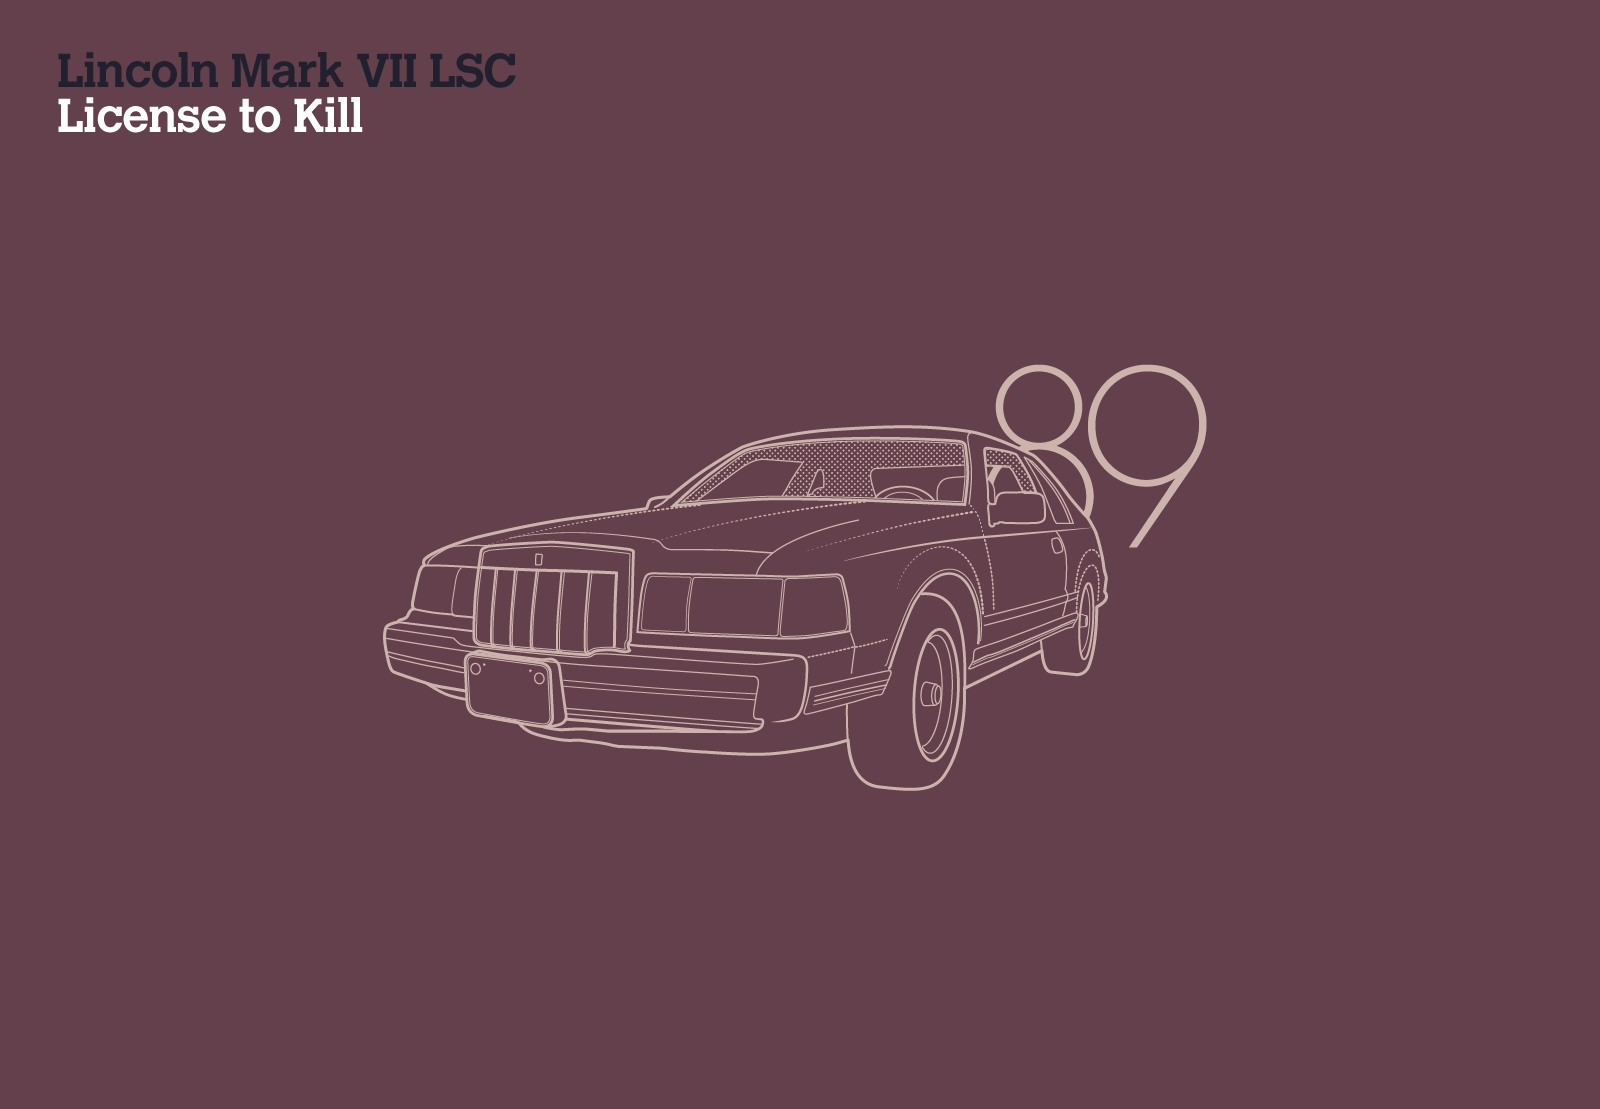 Lincoln Mark VII LSC License To Kill